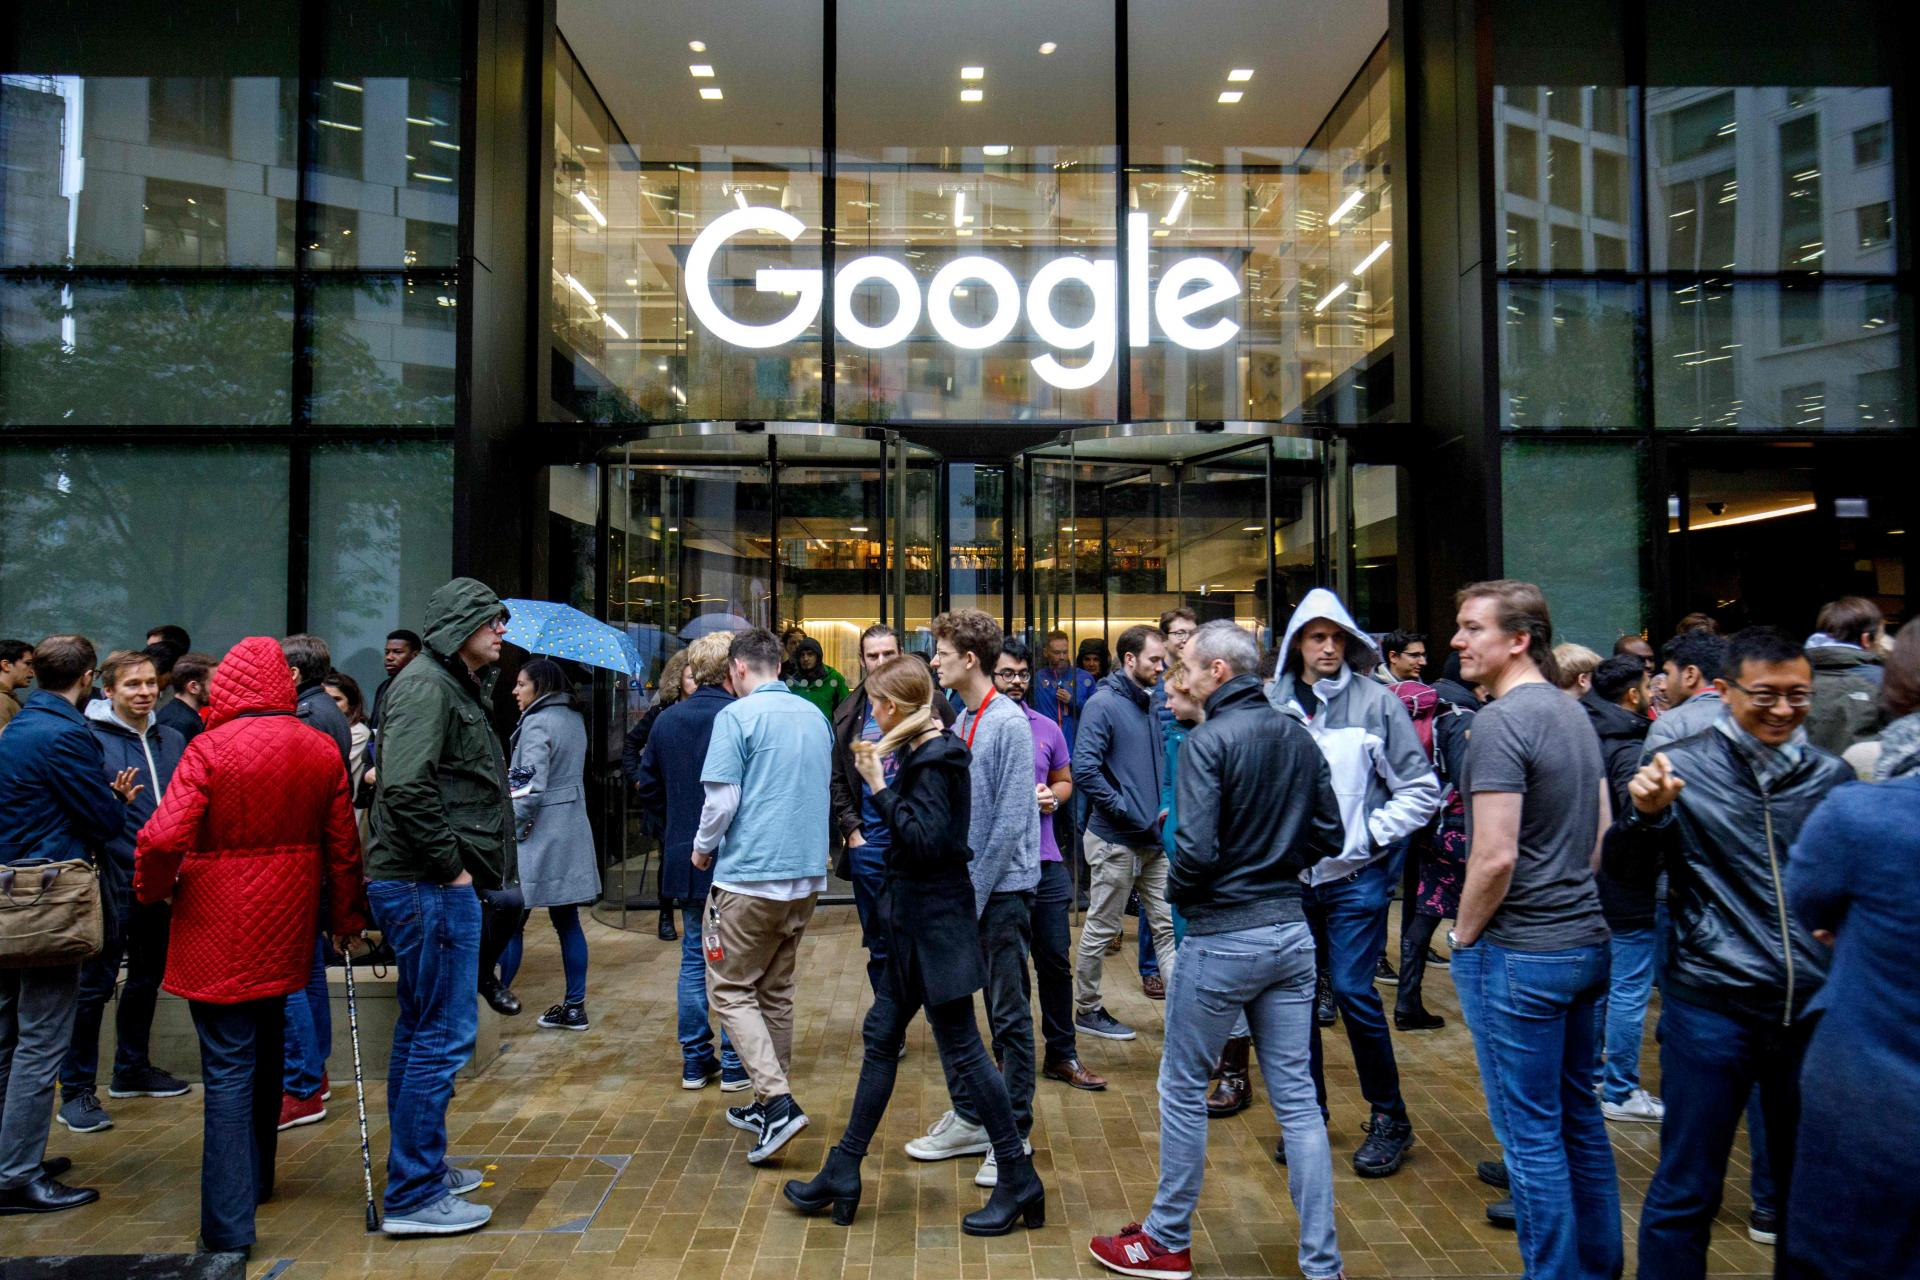 Google's 200k employees to work from home until July 2021